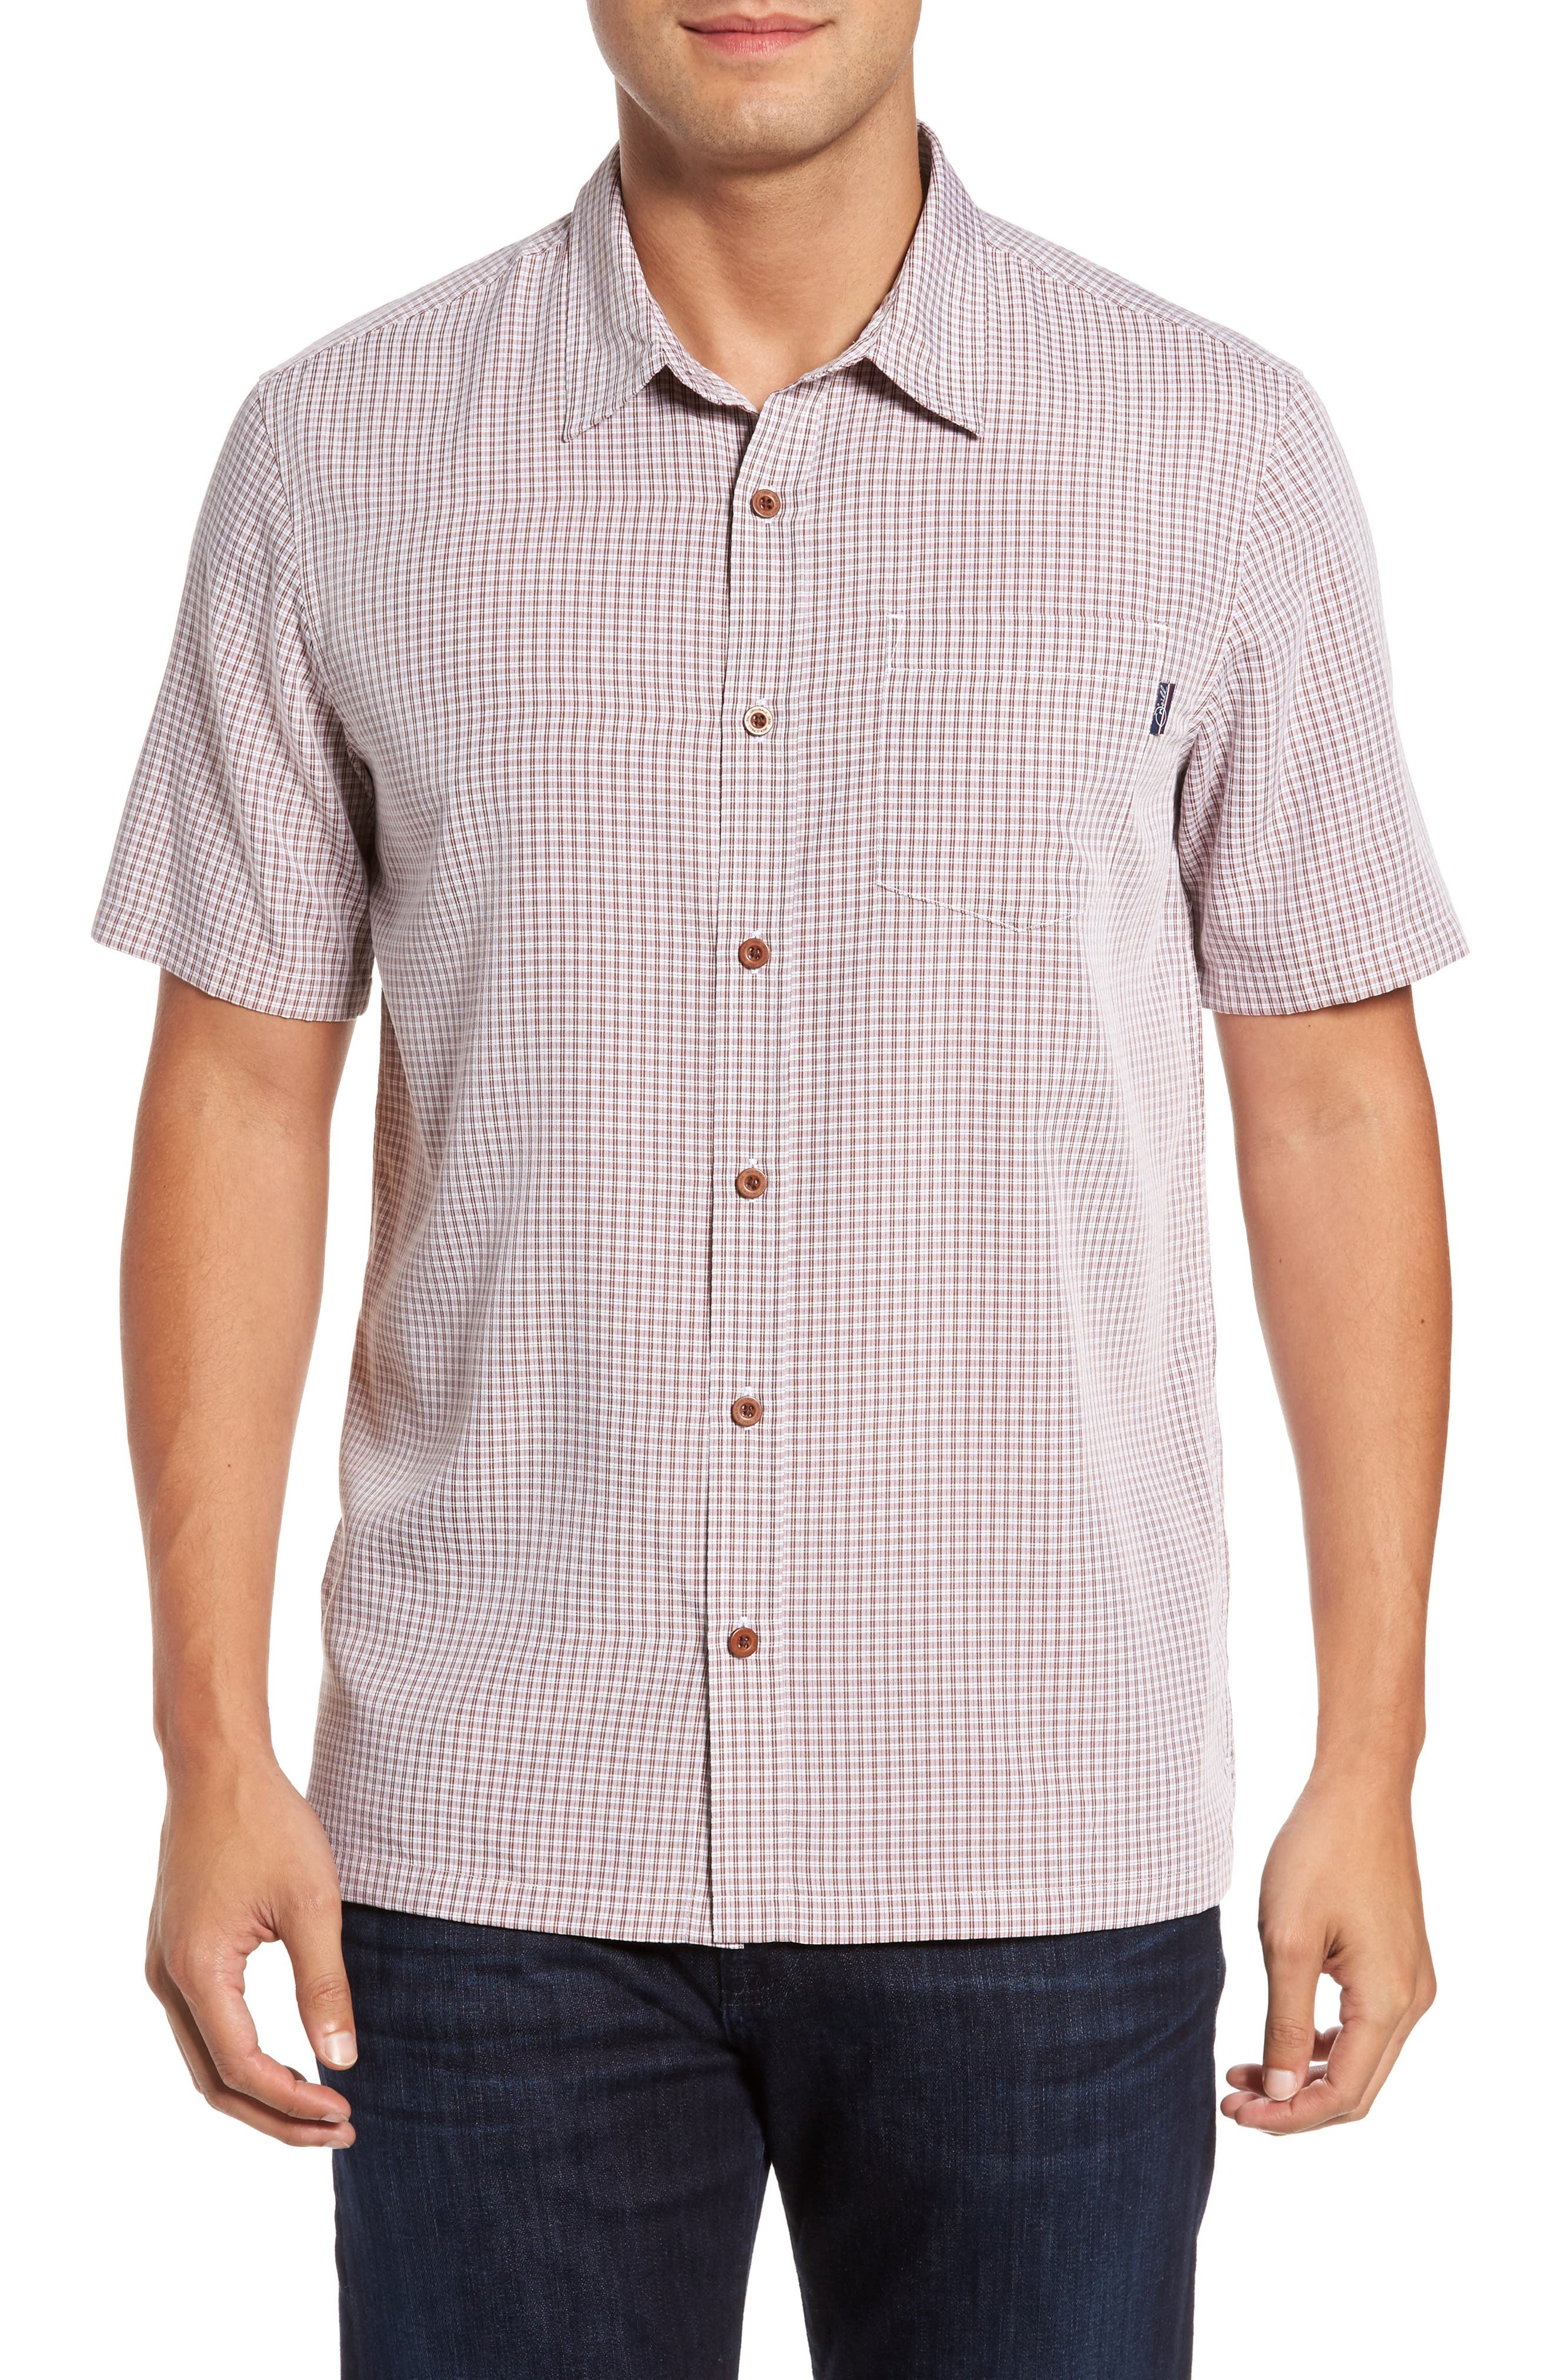 Ford Sport Shirt,                         Main,                         color, Picante